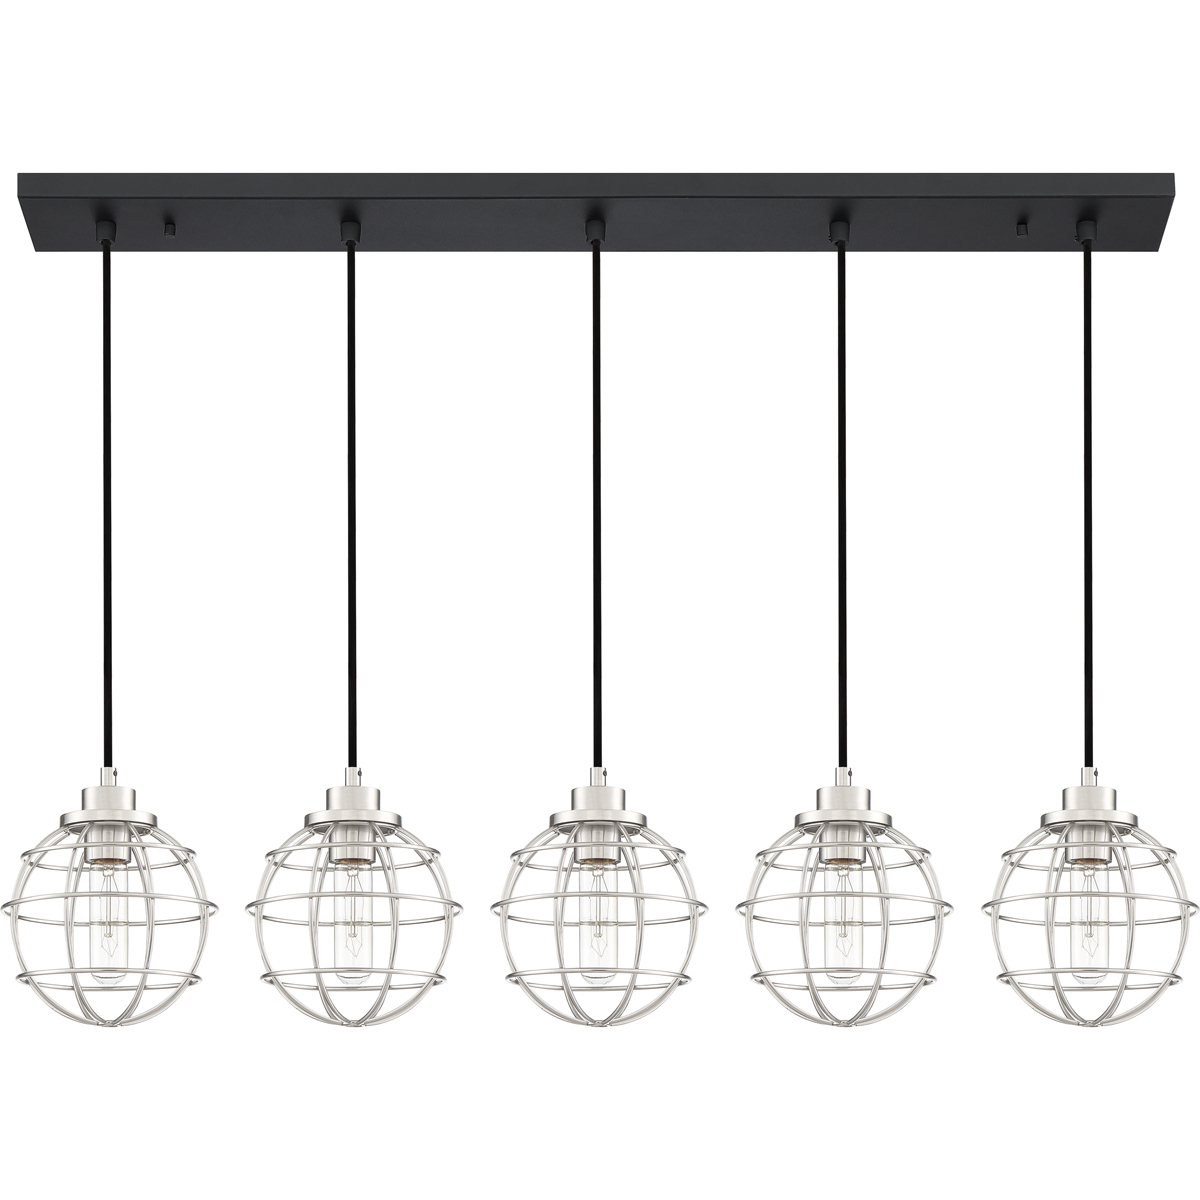 Primary image for Navigator 5-Light Linear Chandelier in Earth Black